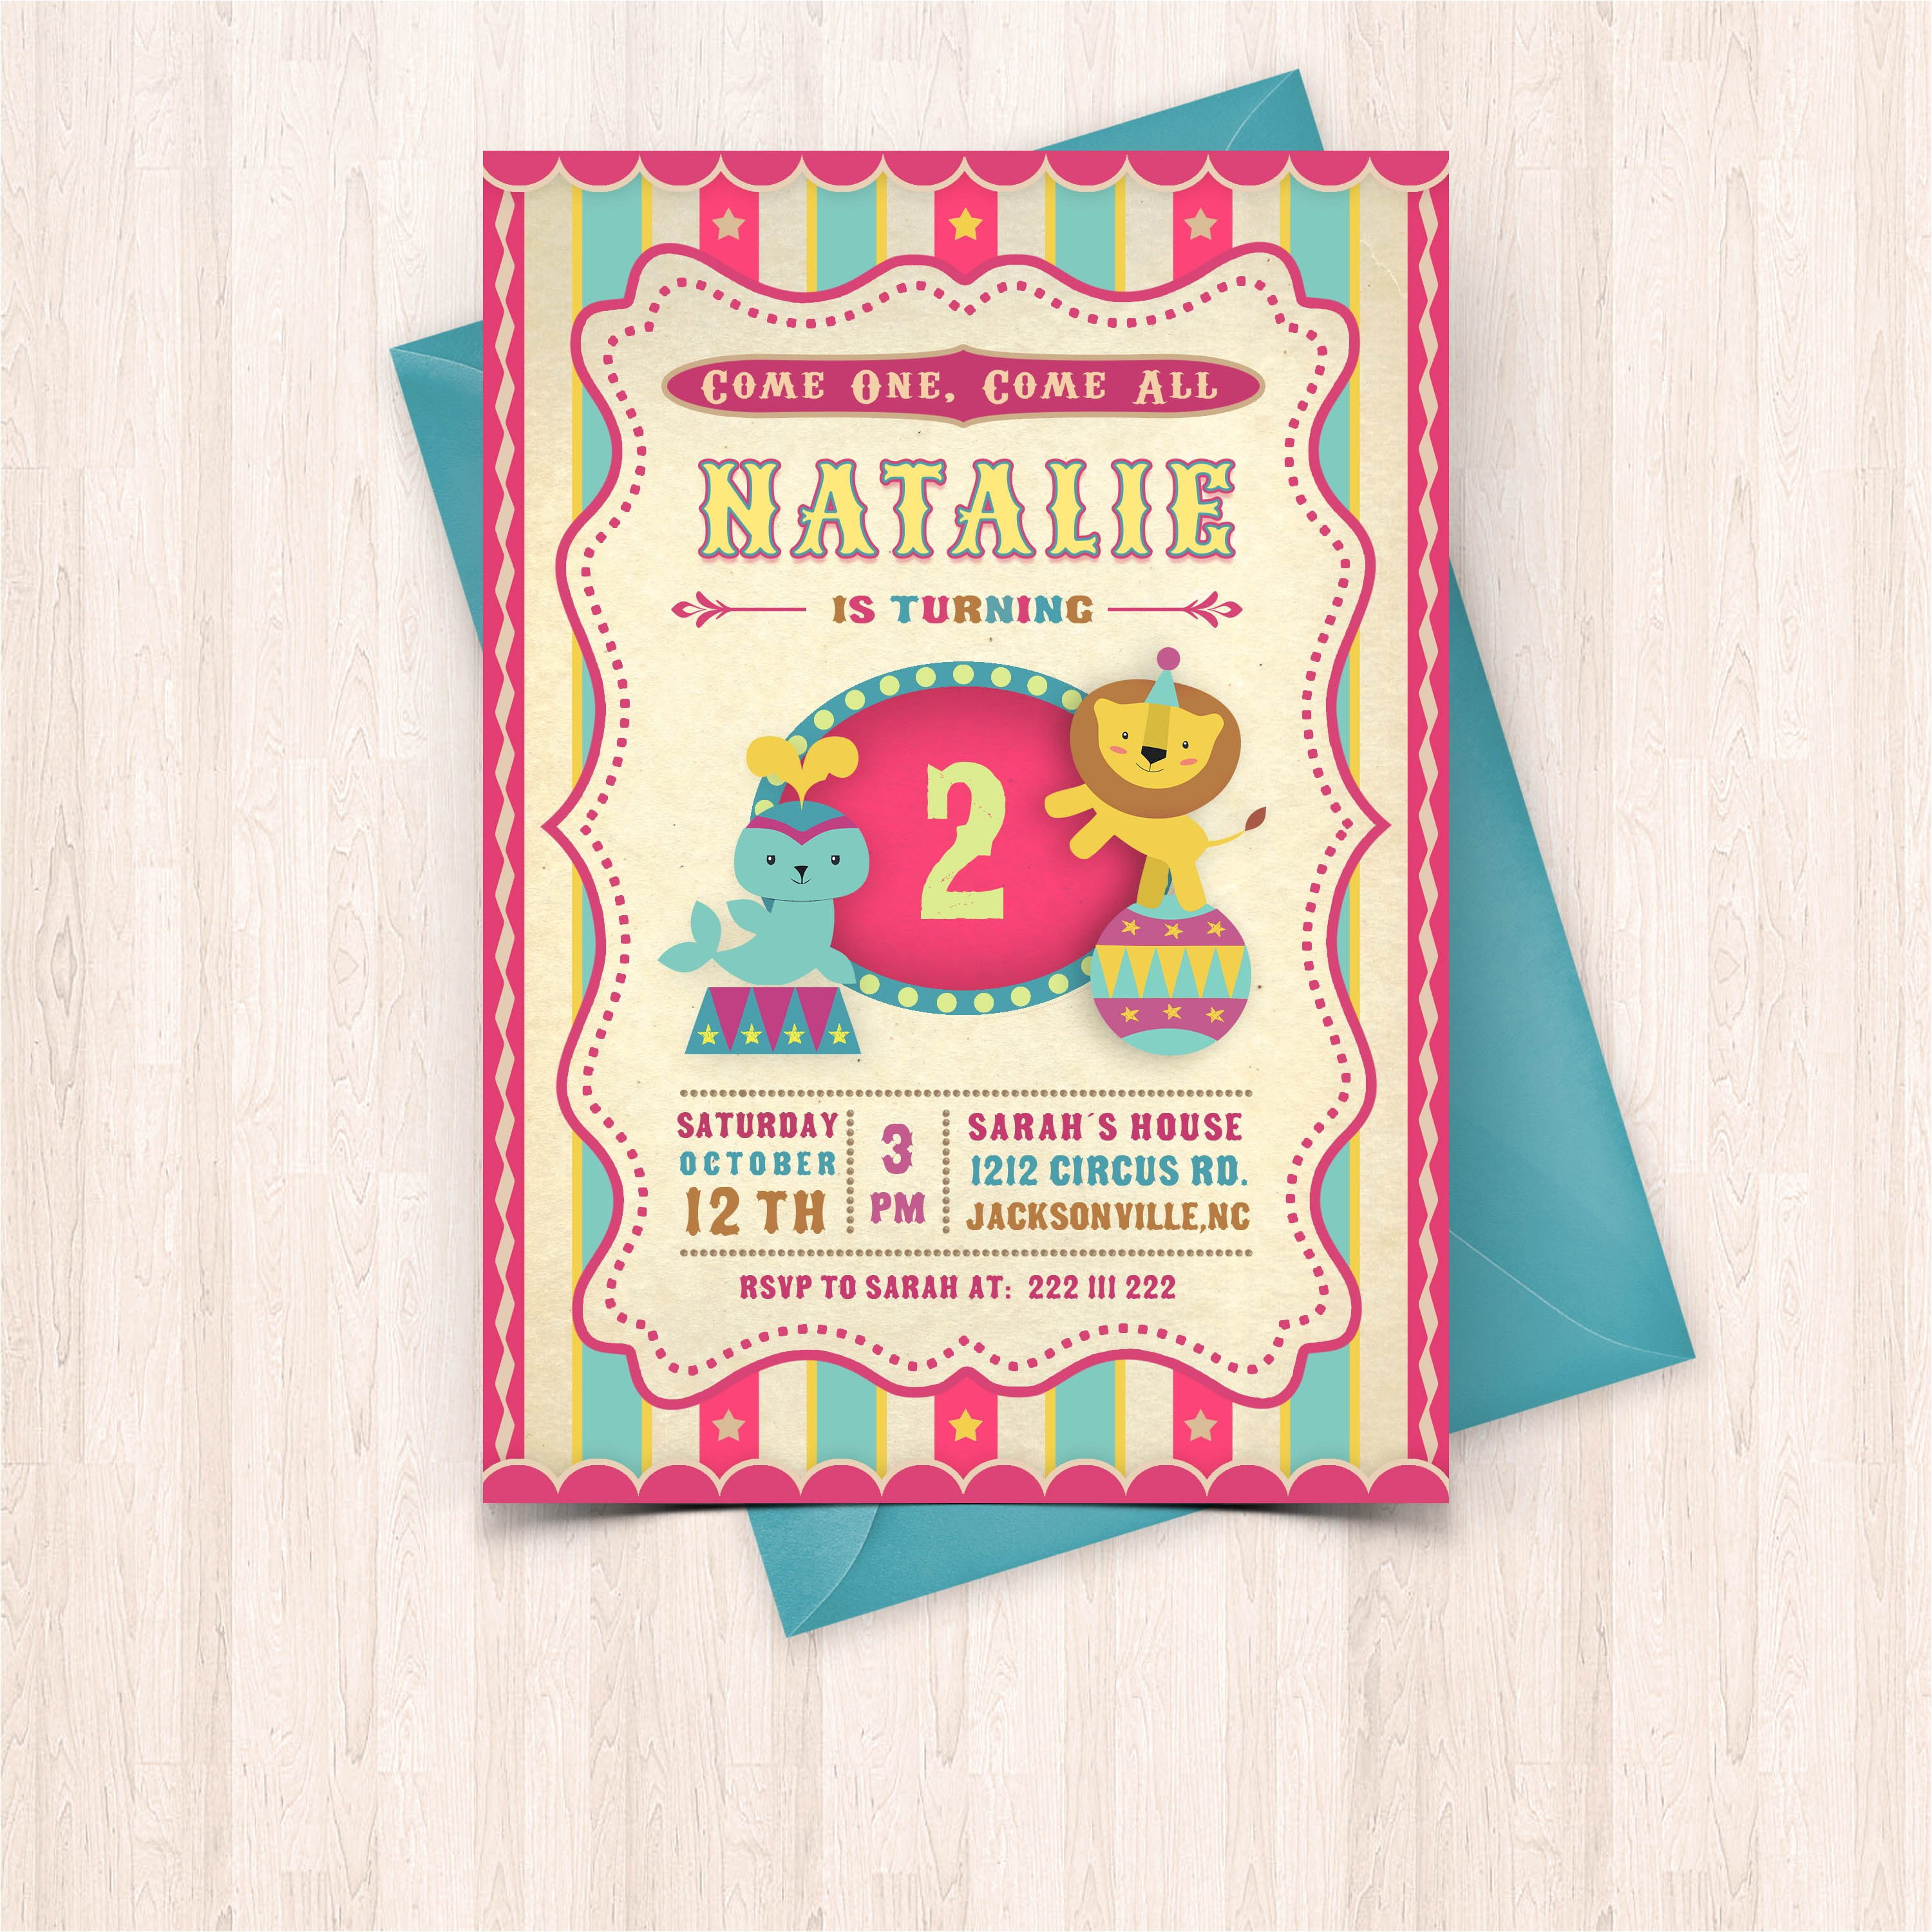 printable circus birthday invitations free thank you cards to print at home